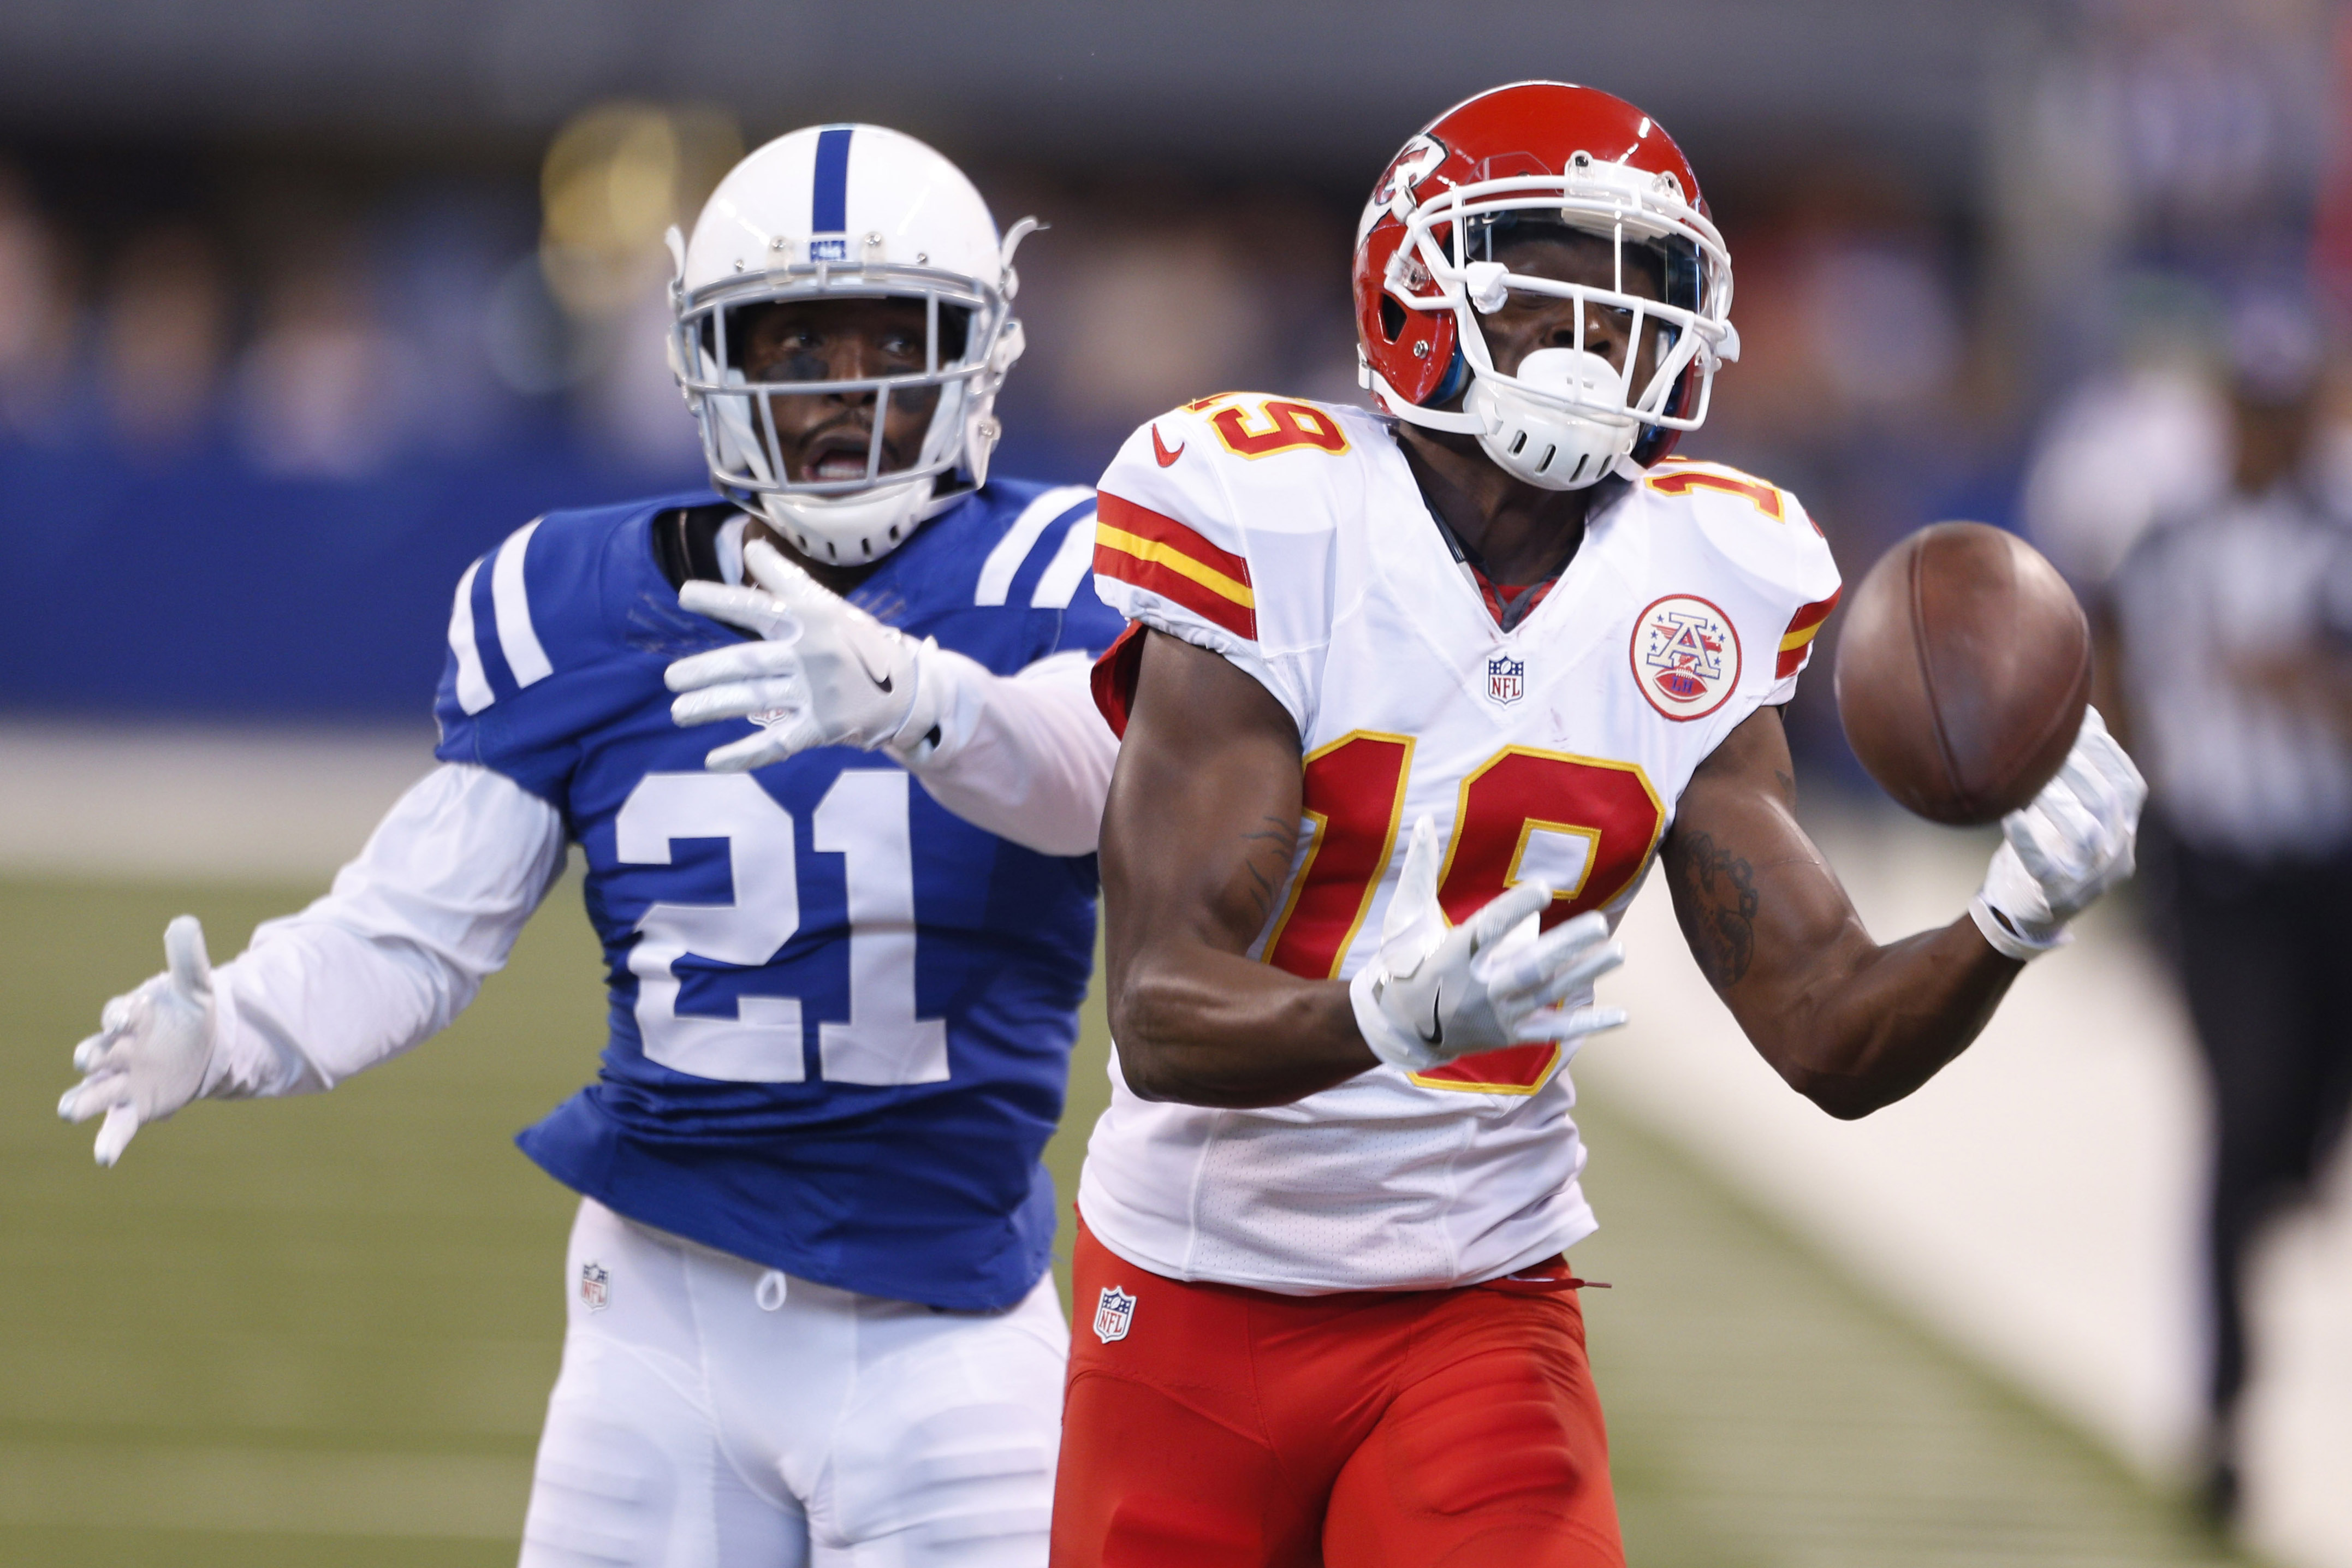 9642748-nfl-kansas-city-chiefs-at-indianapolis-colts